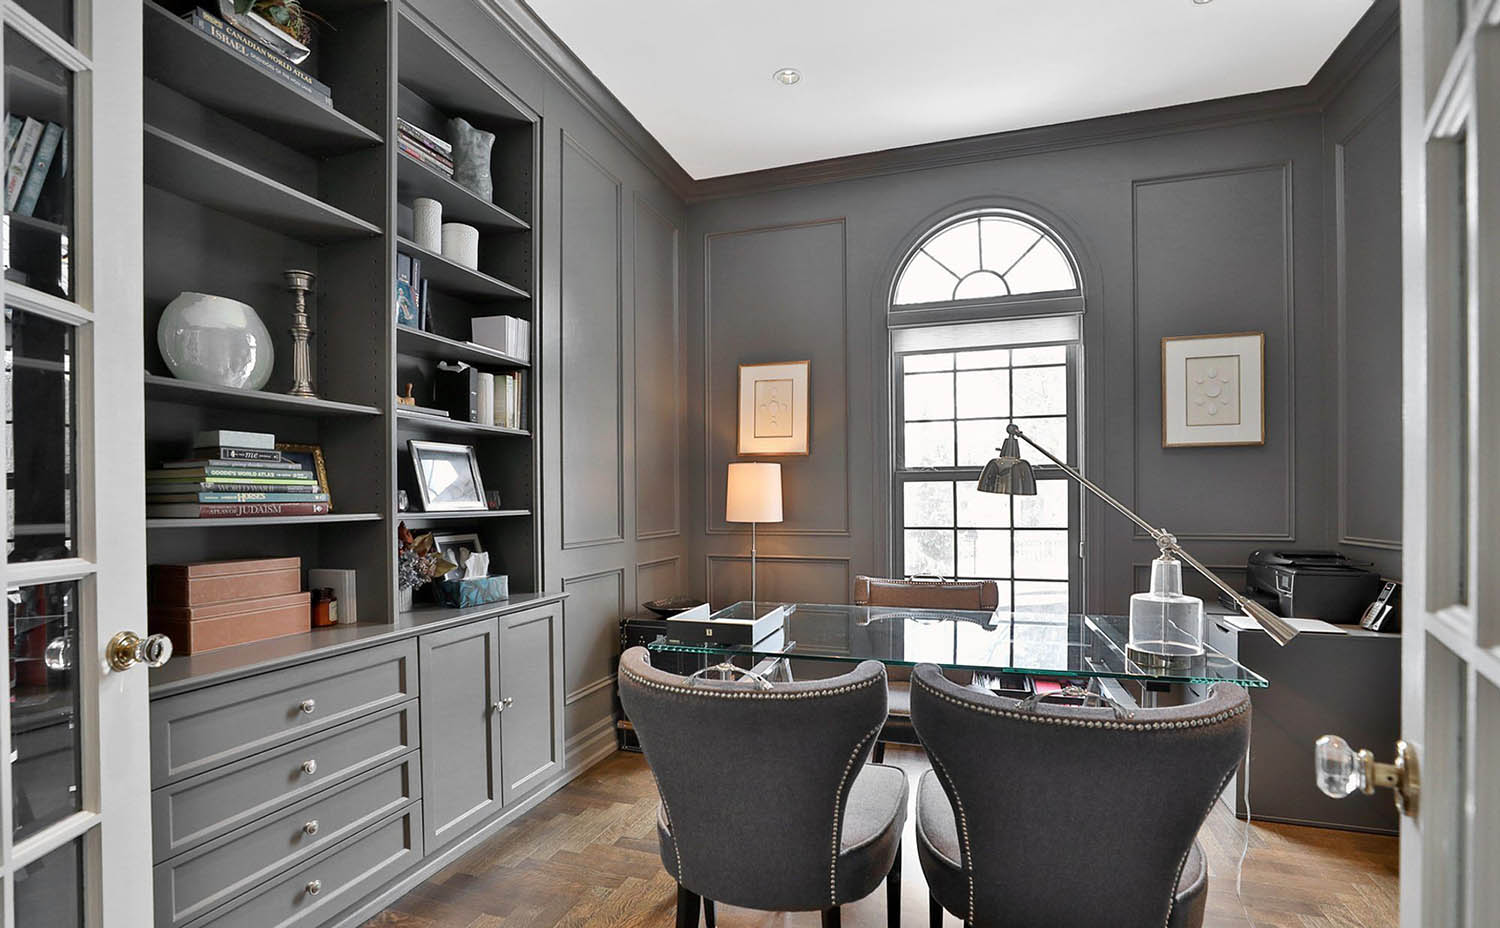 Wood paneling painted gray. Built in cabinets and shelving. Monochromatic design.